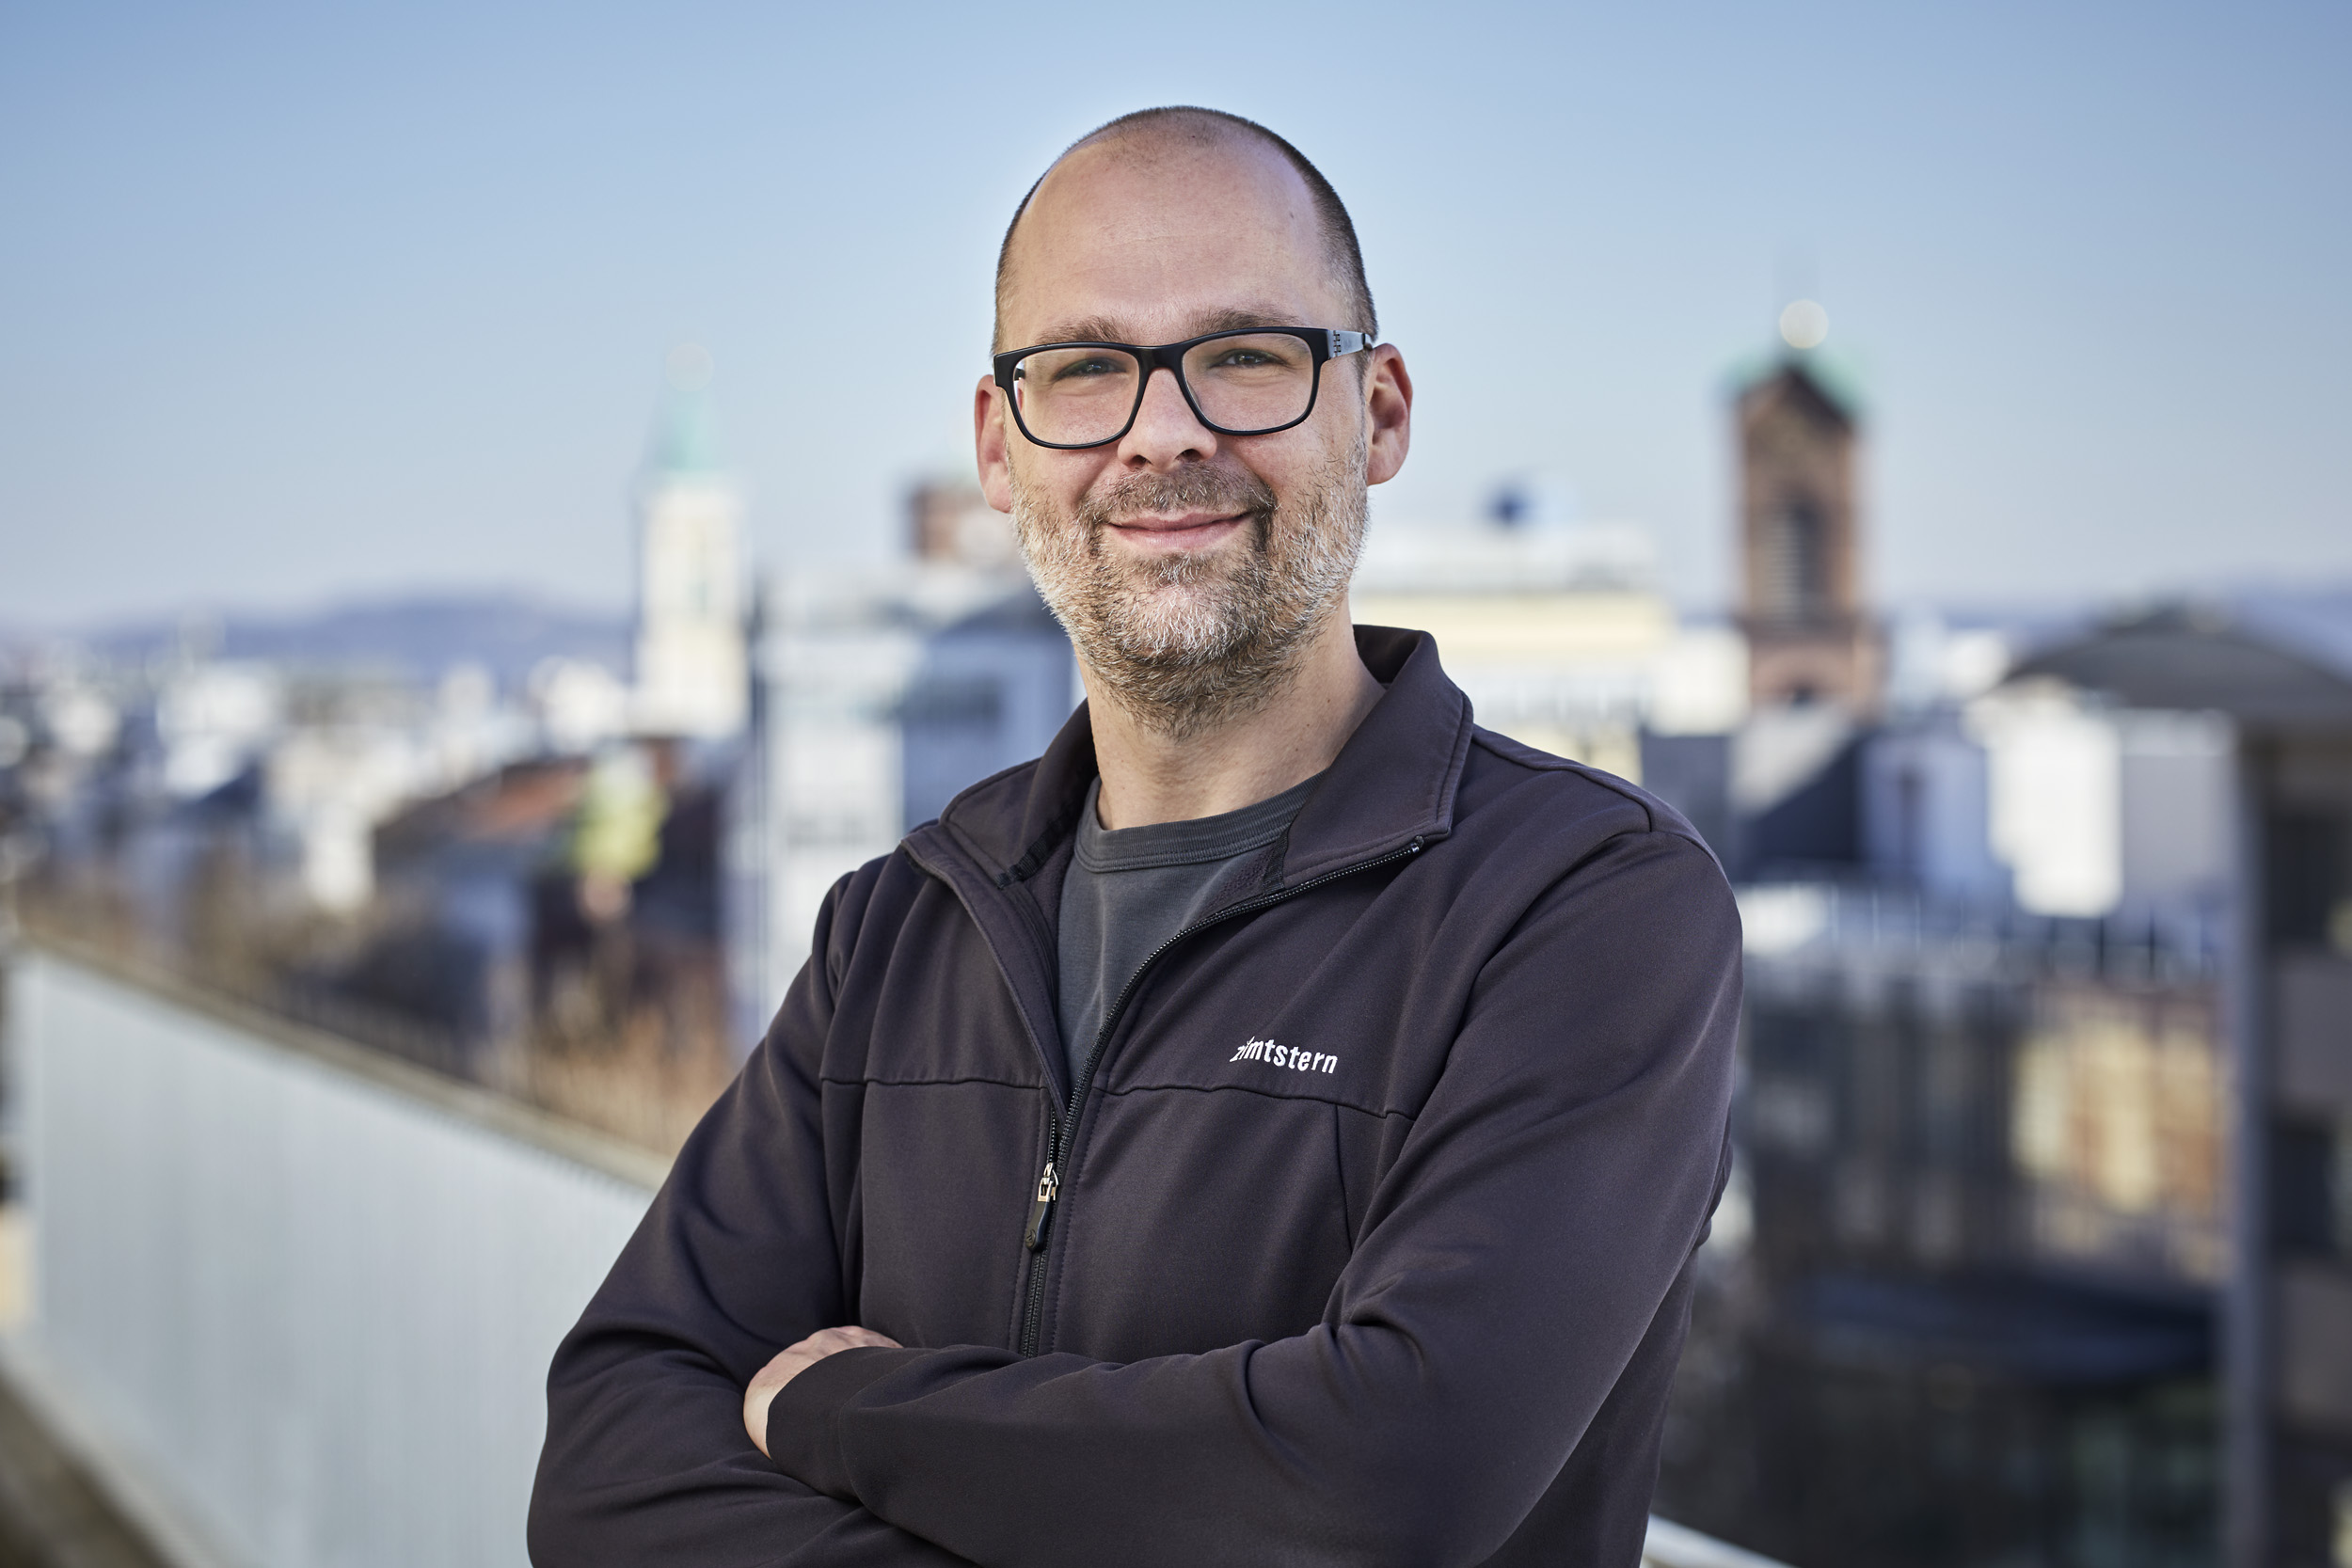 Klaas Kersting is the founder and CEO of Phoenix Games. Before his latest mission, Klaas founded Gameforge and Flaregames. He was also one of the first investors in multiple game companies, out of which Supercell and Wooga, to mention a few.